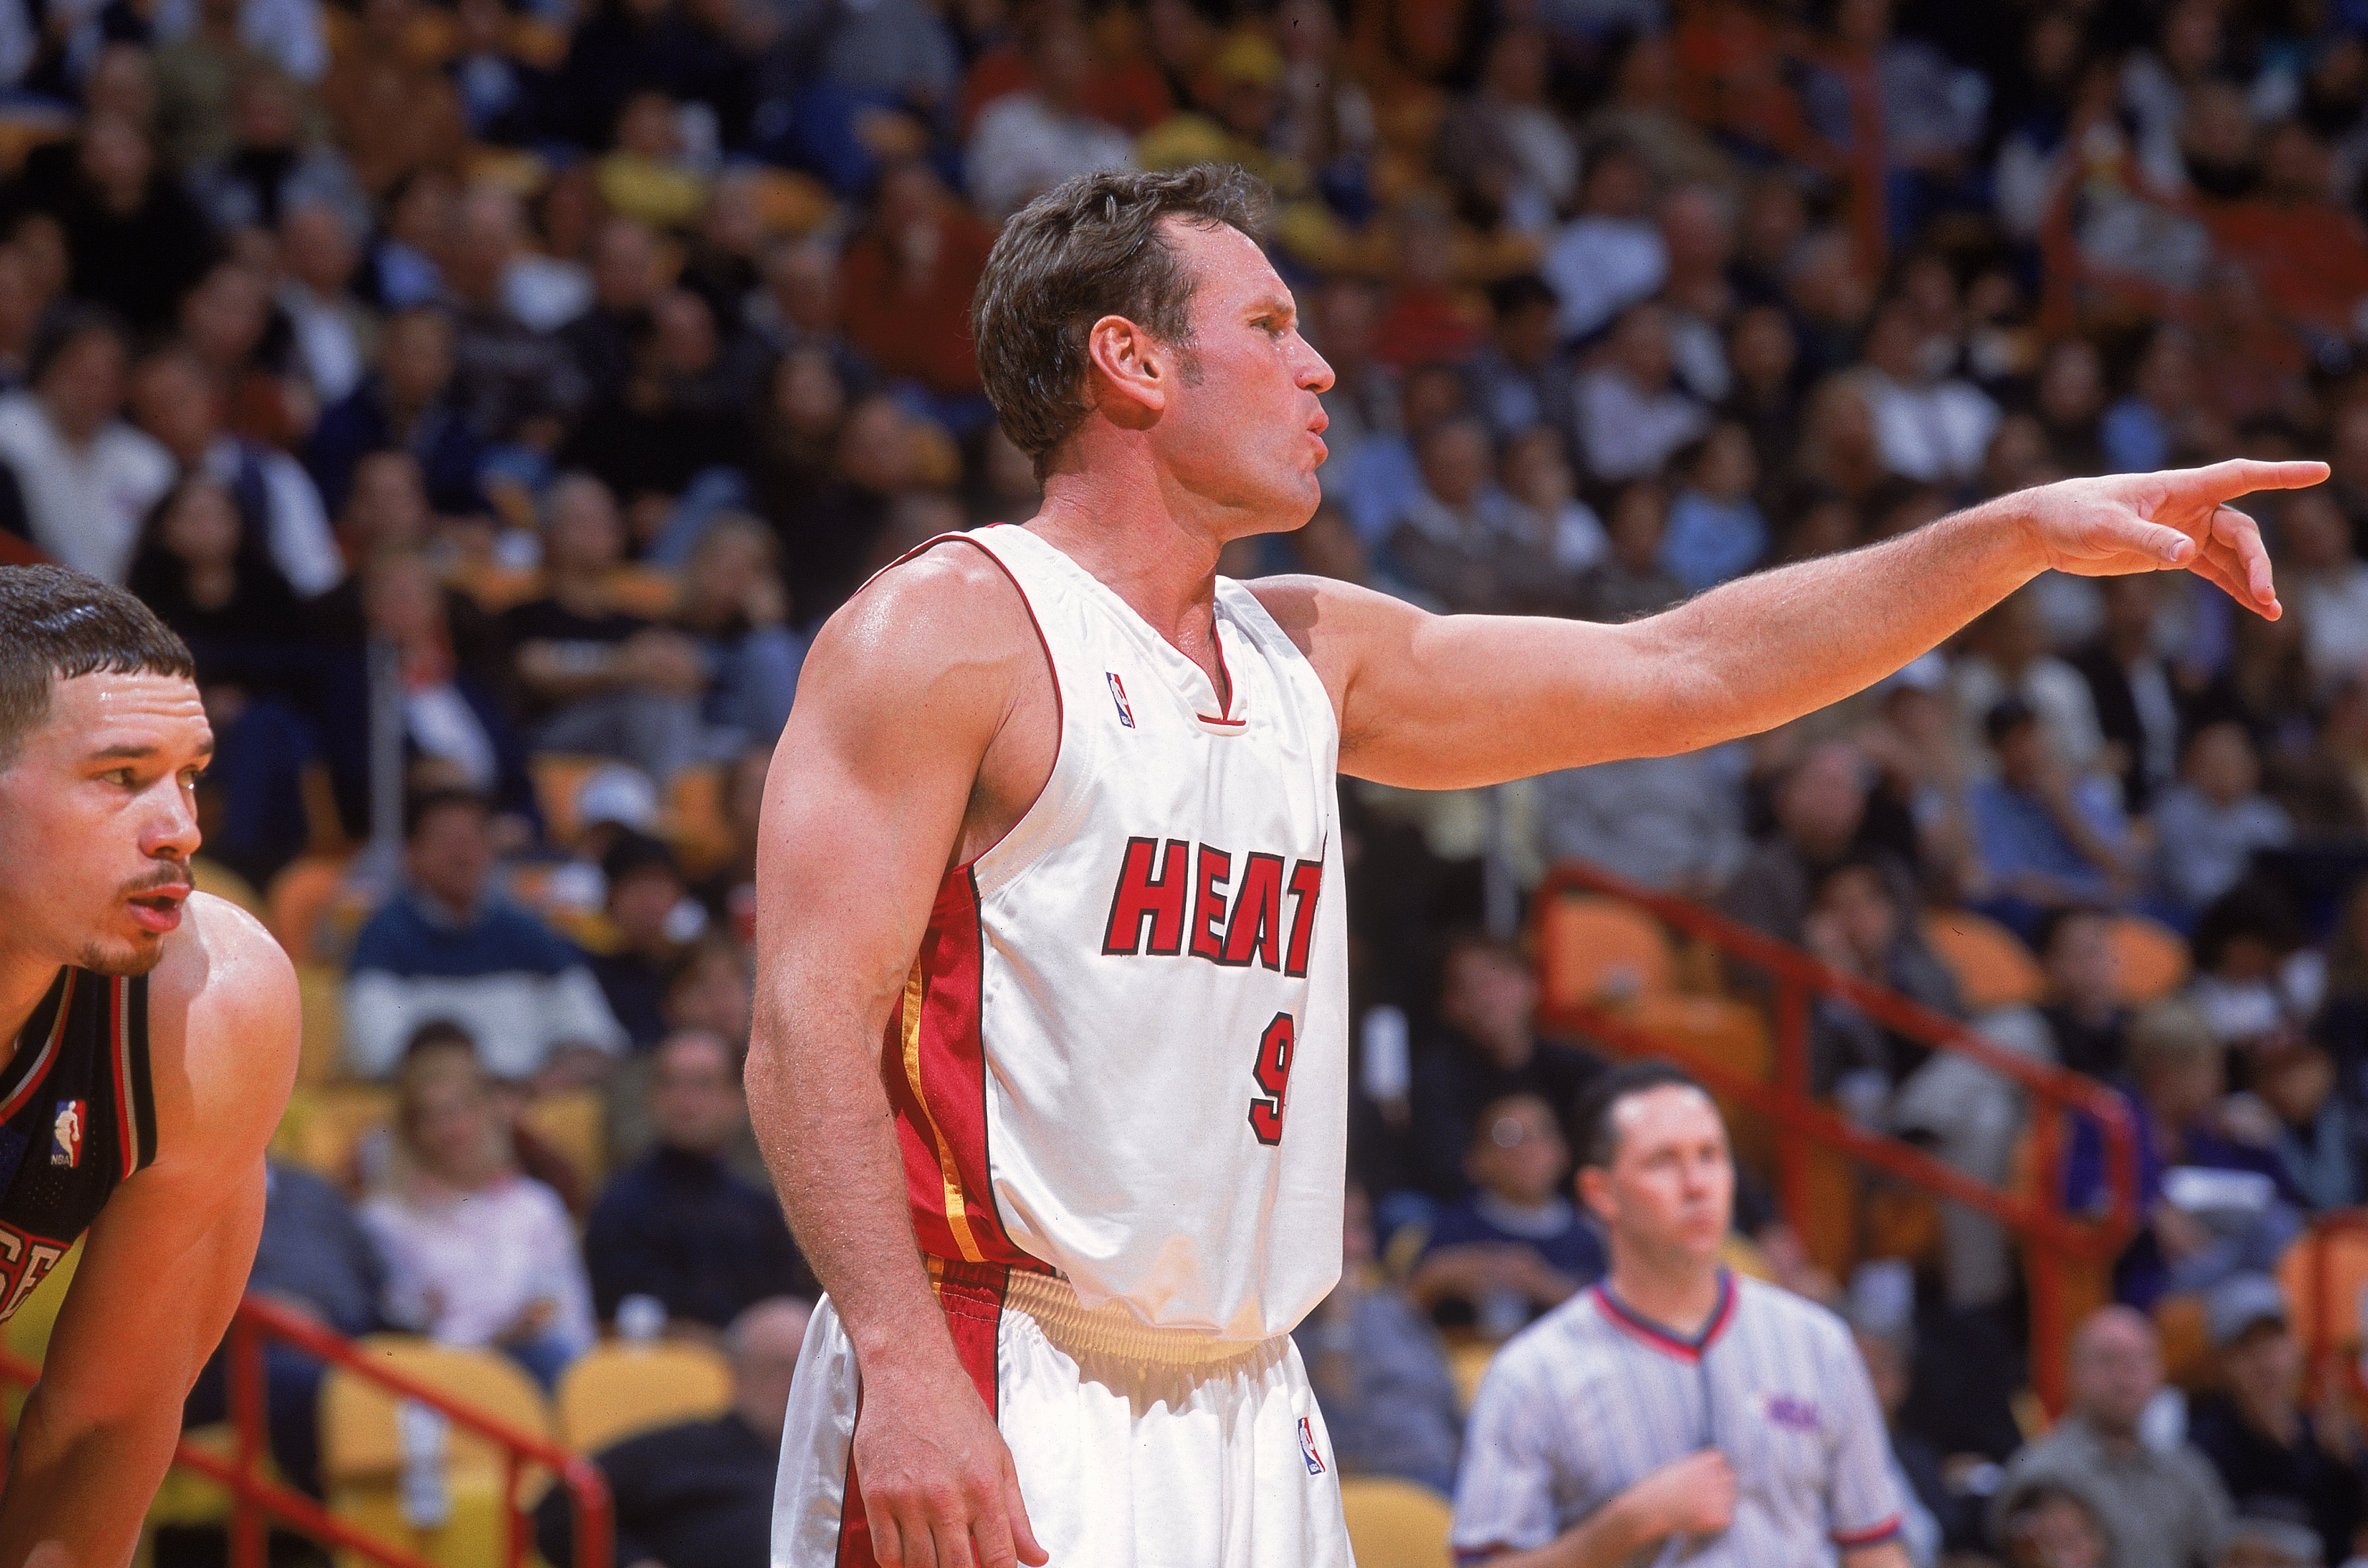 4 Jan 2001:  Dan Majerle #9 of the Miami Heat reacts to a play as Aaron Williams #34 of the New Jersey Nets looks on during the game at the American Airlines Arena in Miami, Florida.  The Heat defeated the Nets 81-78.  NOTE TO USER: It is expressly unders